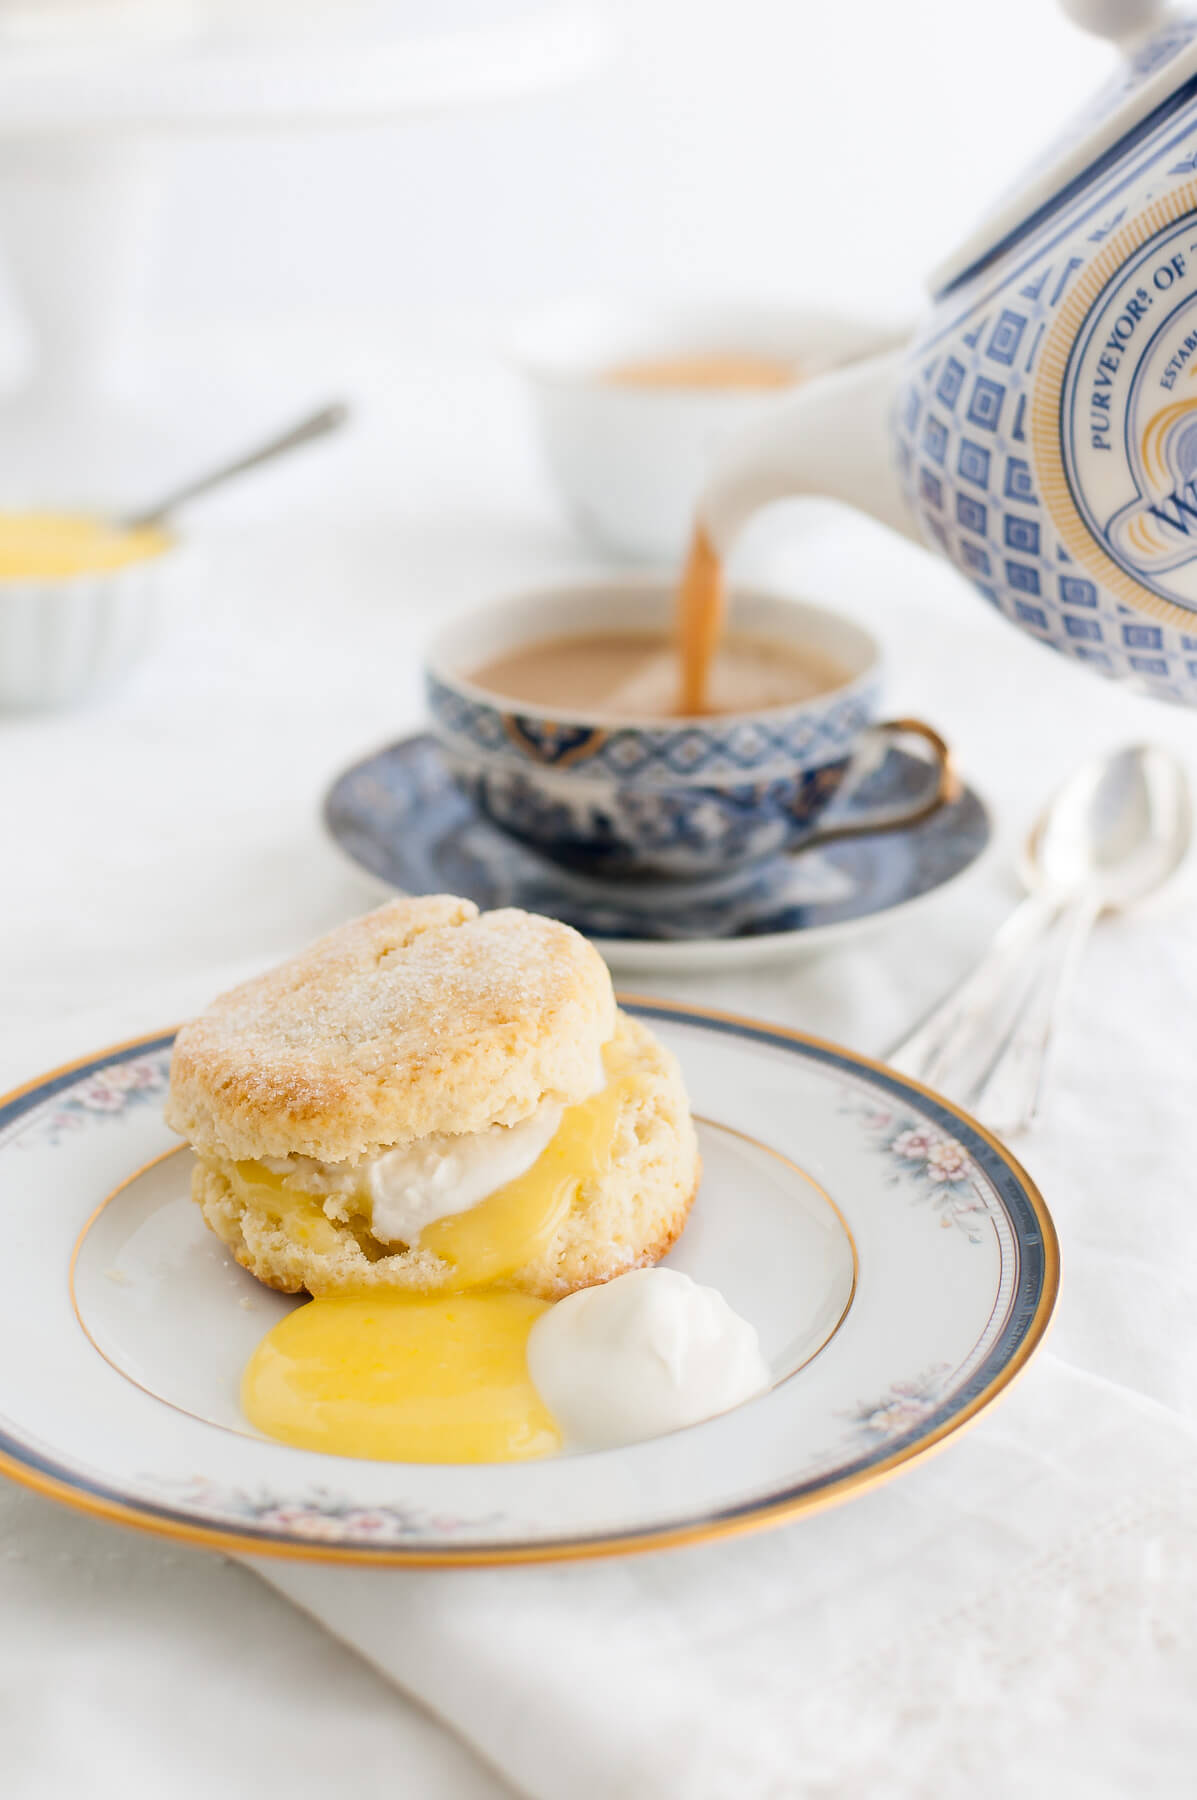 Cream scone, lemon curd, and whipped cream on a china plate with a cup of tea being poured in the background.